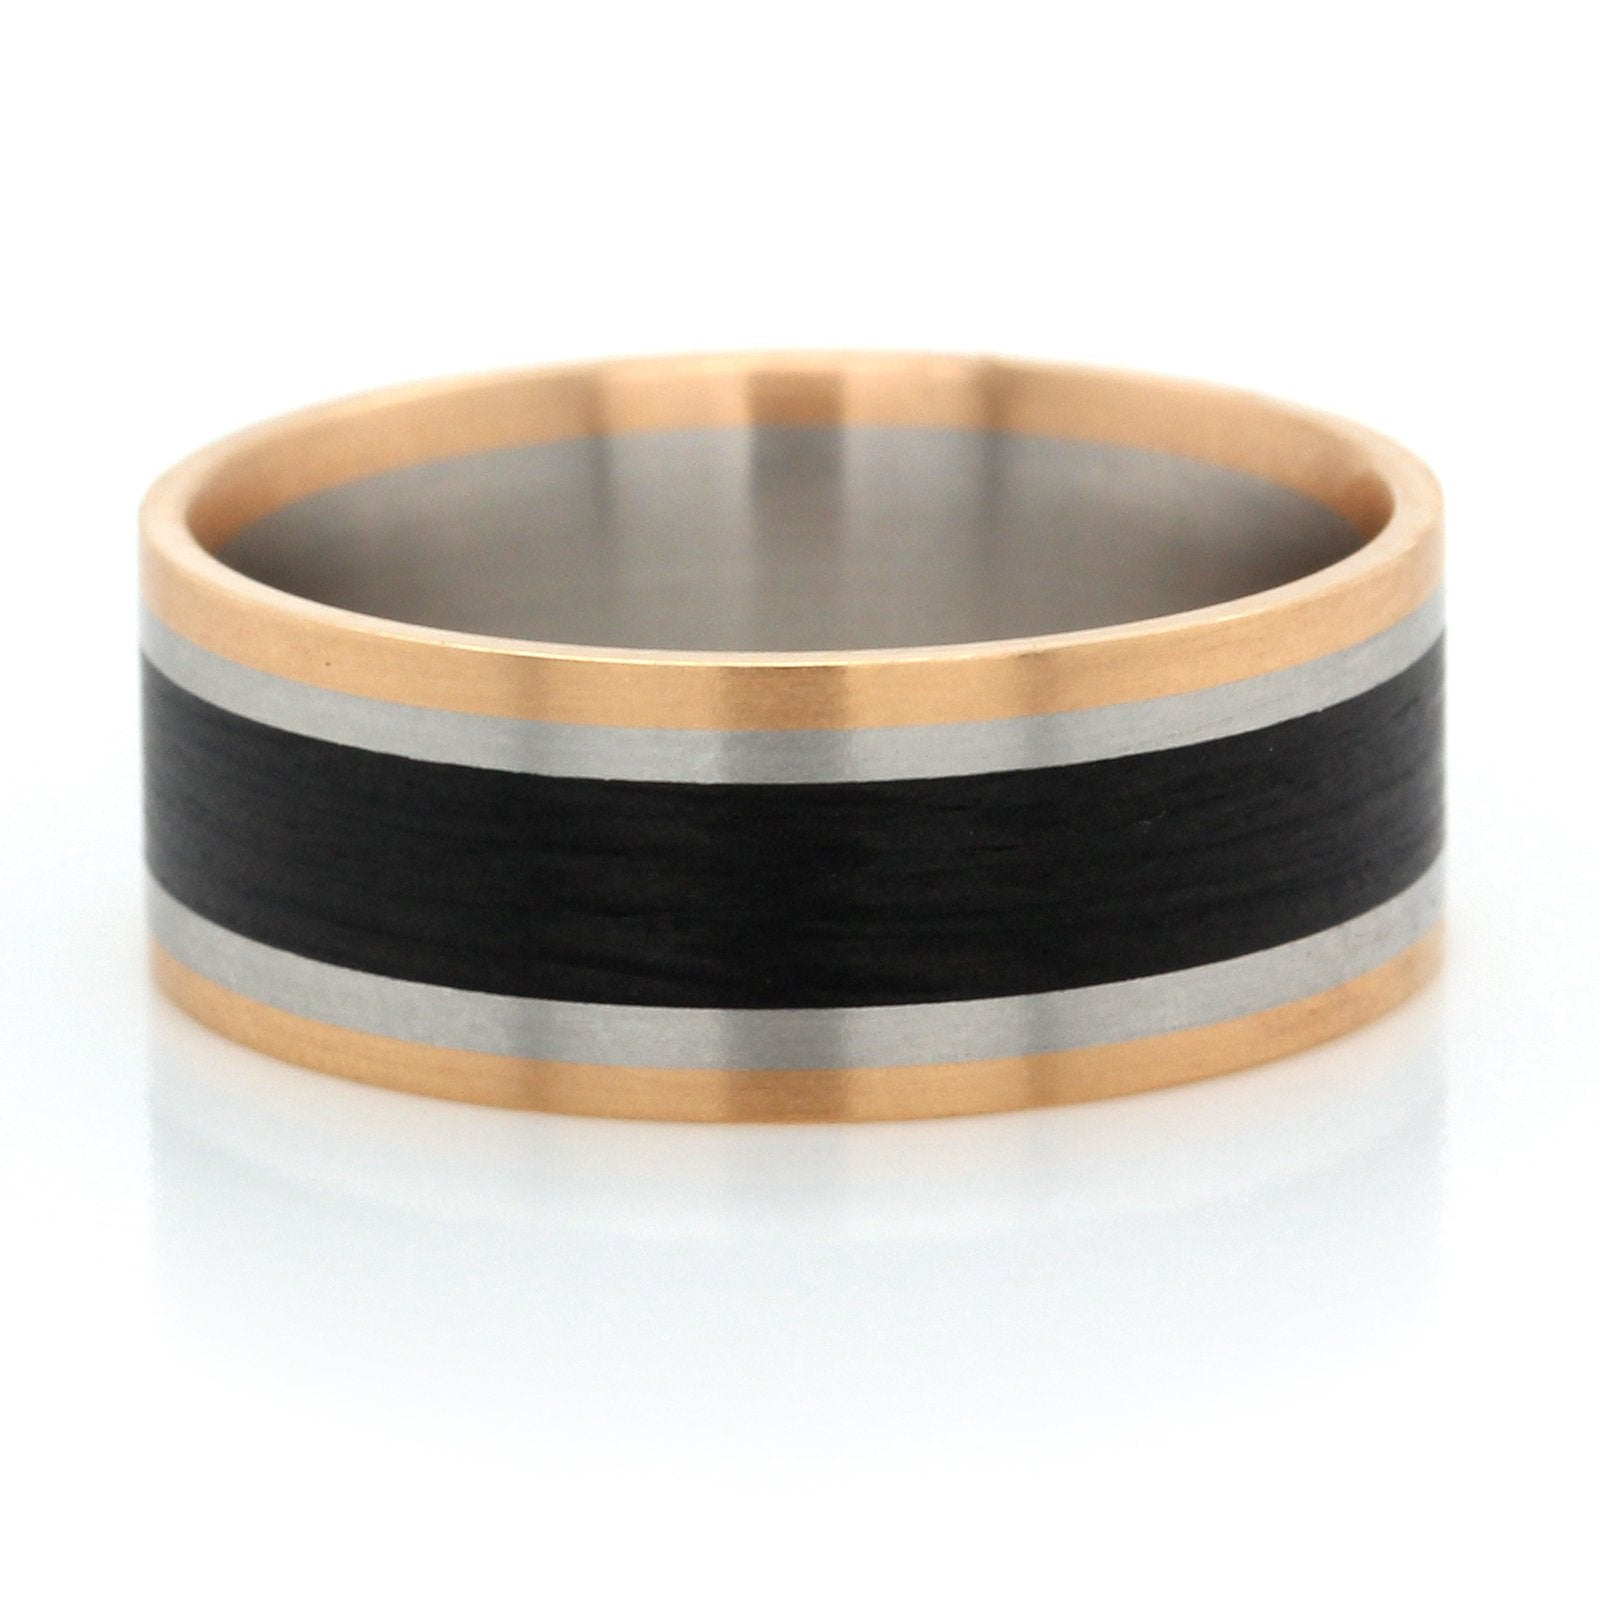 18K Rose Gold and Palladium Carbon Fiber Wedding Ring